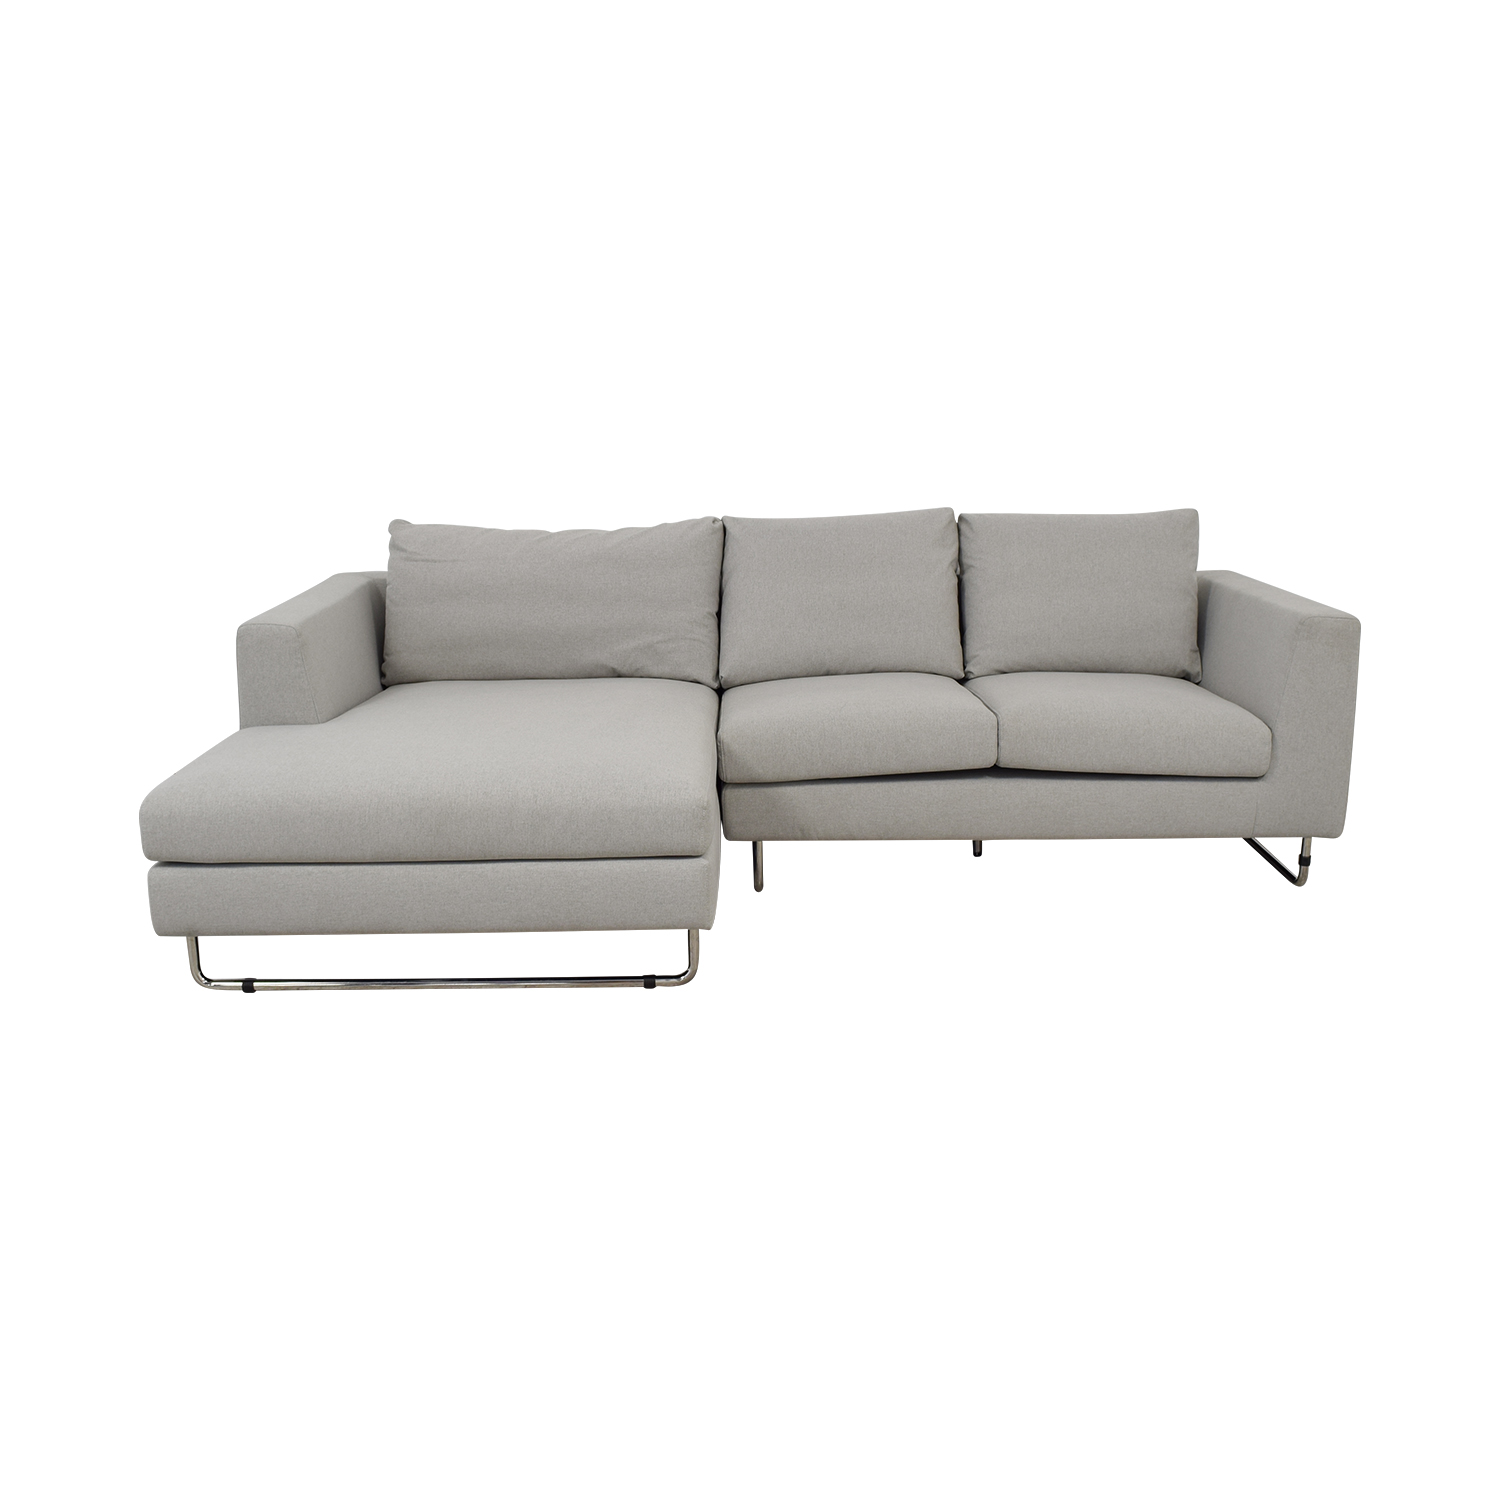 Asher Grey Left Chaise Sectional on sale